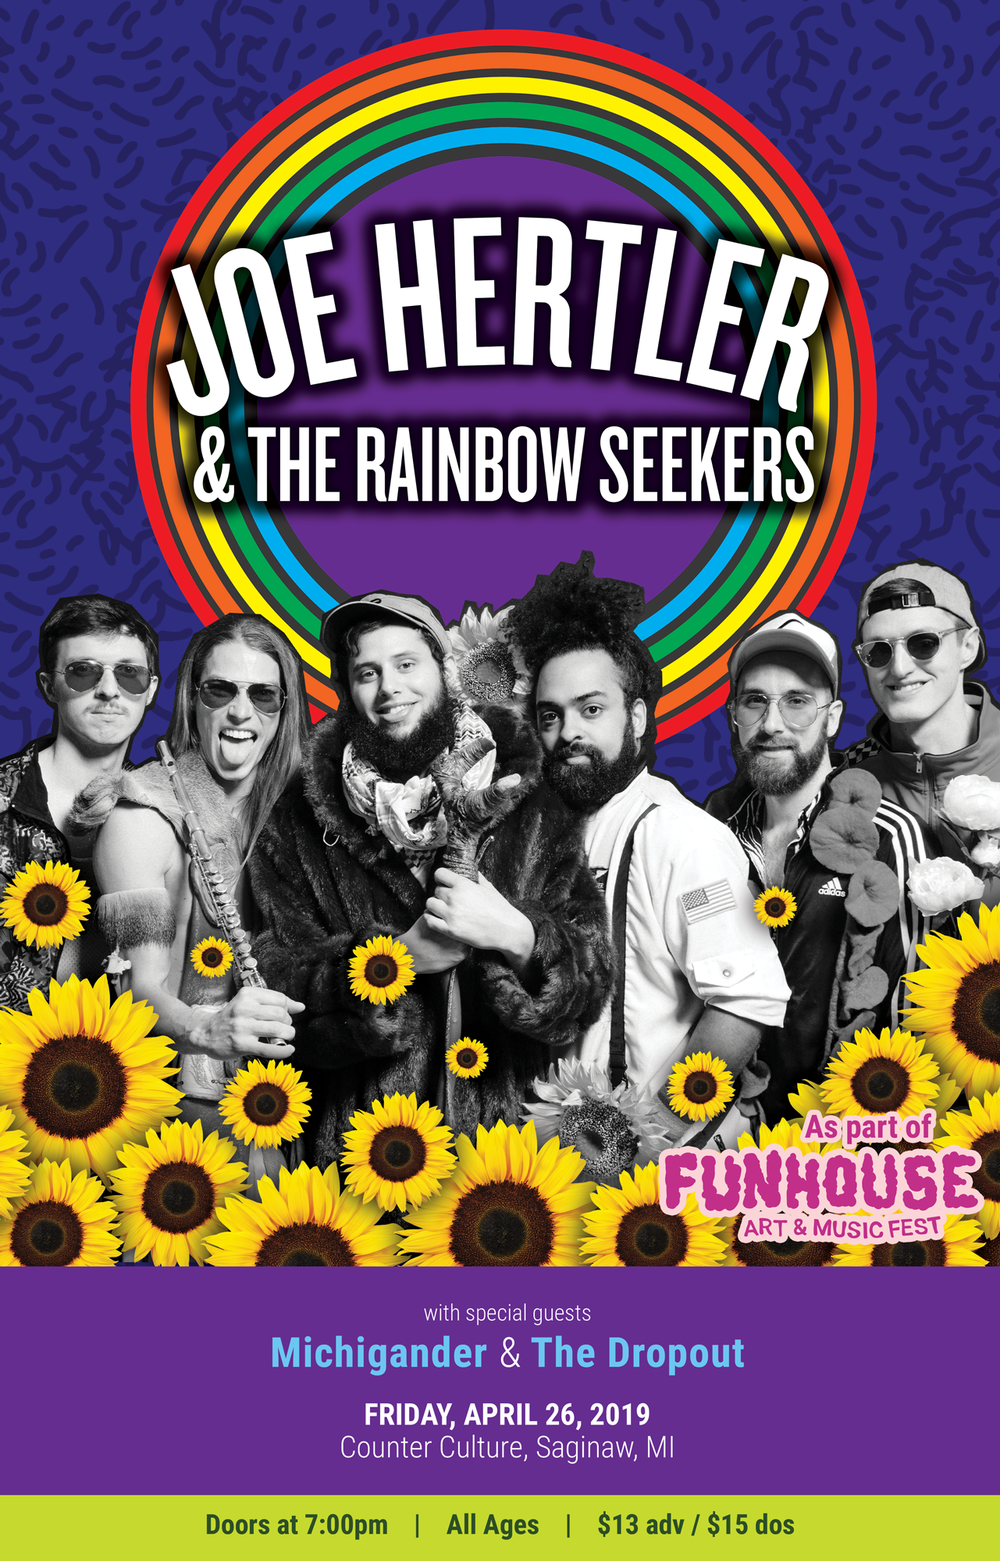 JOE HERTLER & THE RAINBOW SEEKERS - w/ Michigander, The DropoutFriday, April 26, 2019 @ Counter Culture - Saginaw, MIDoors at 7pm - All Ages - $13 adv / $15 dos